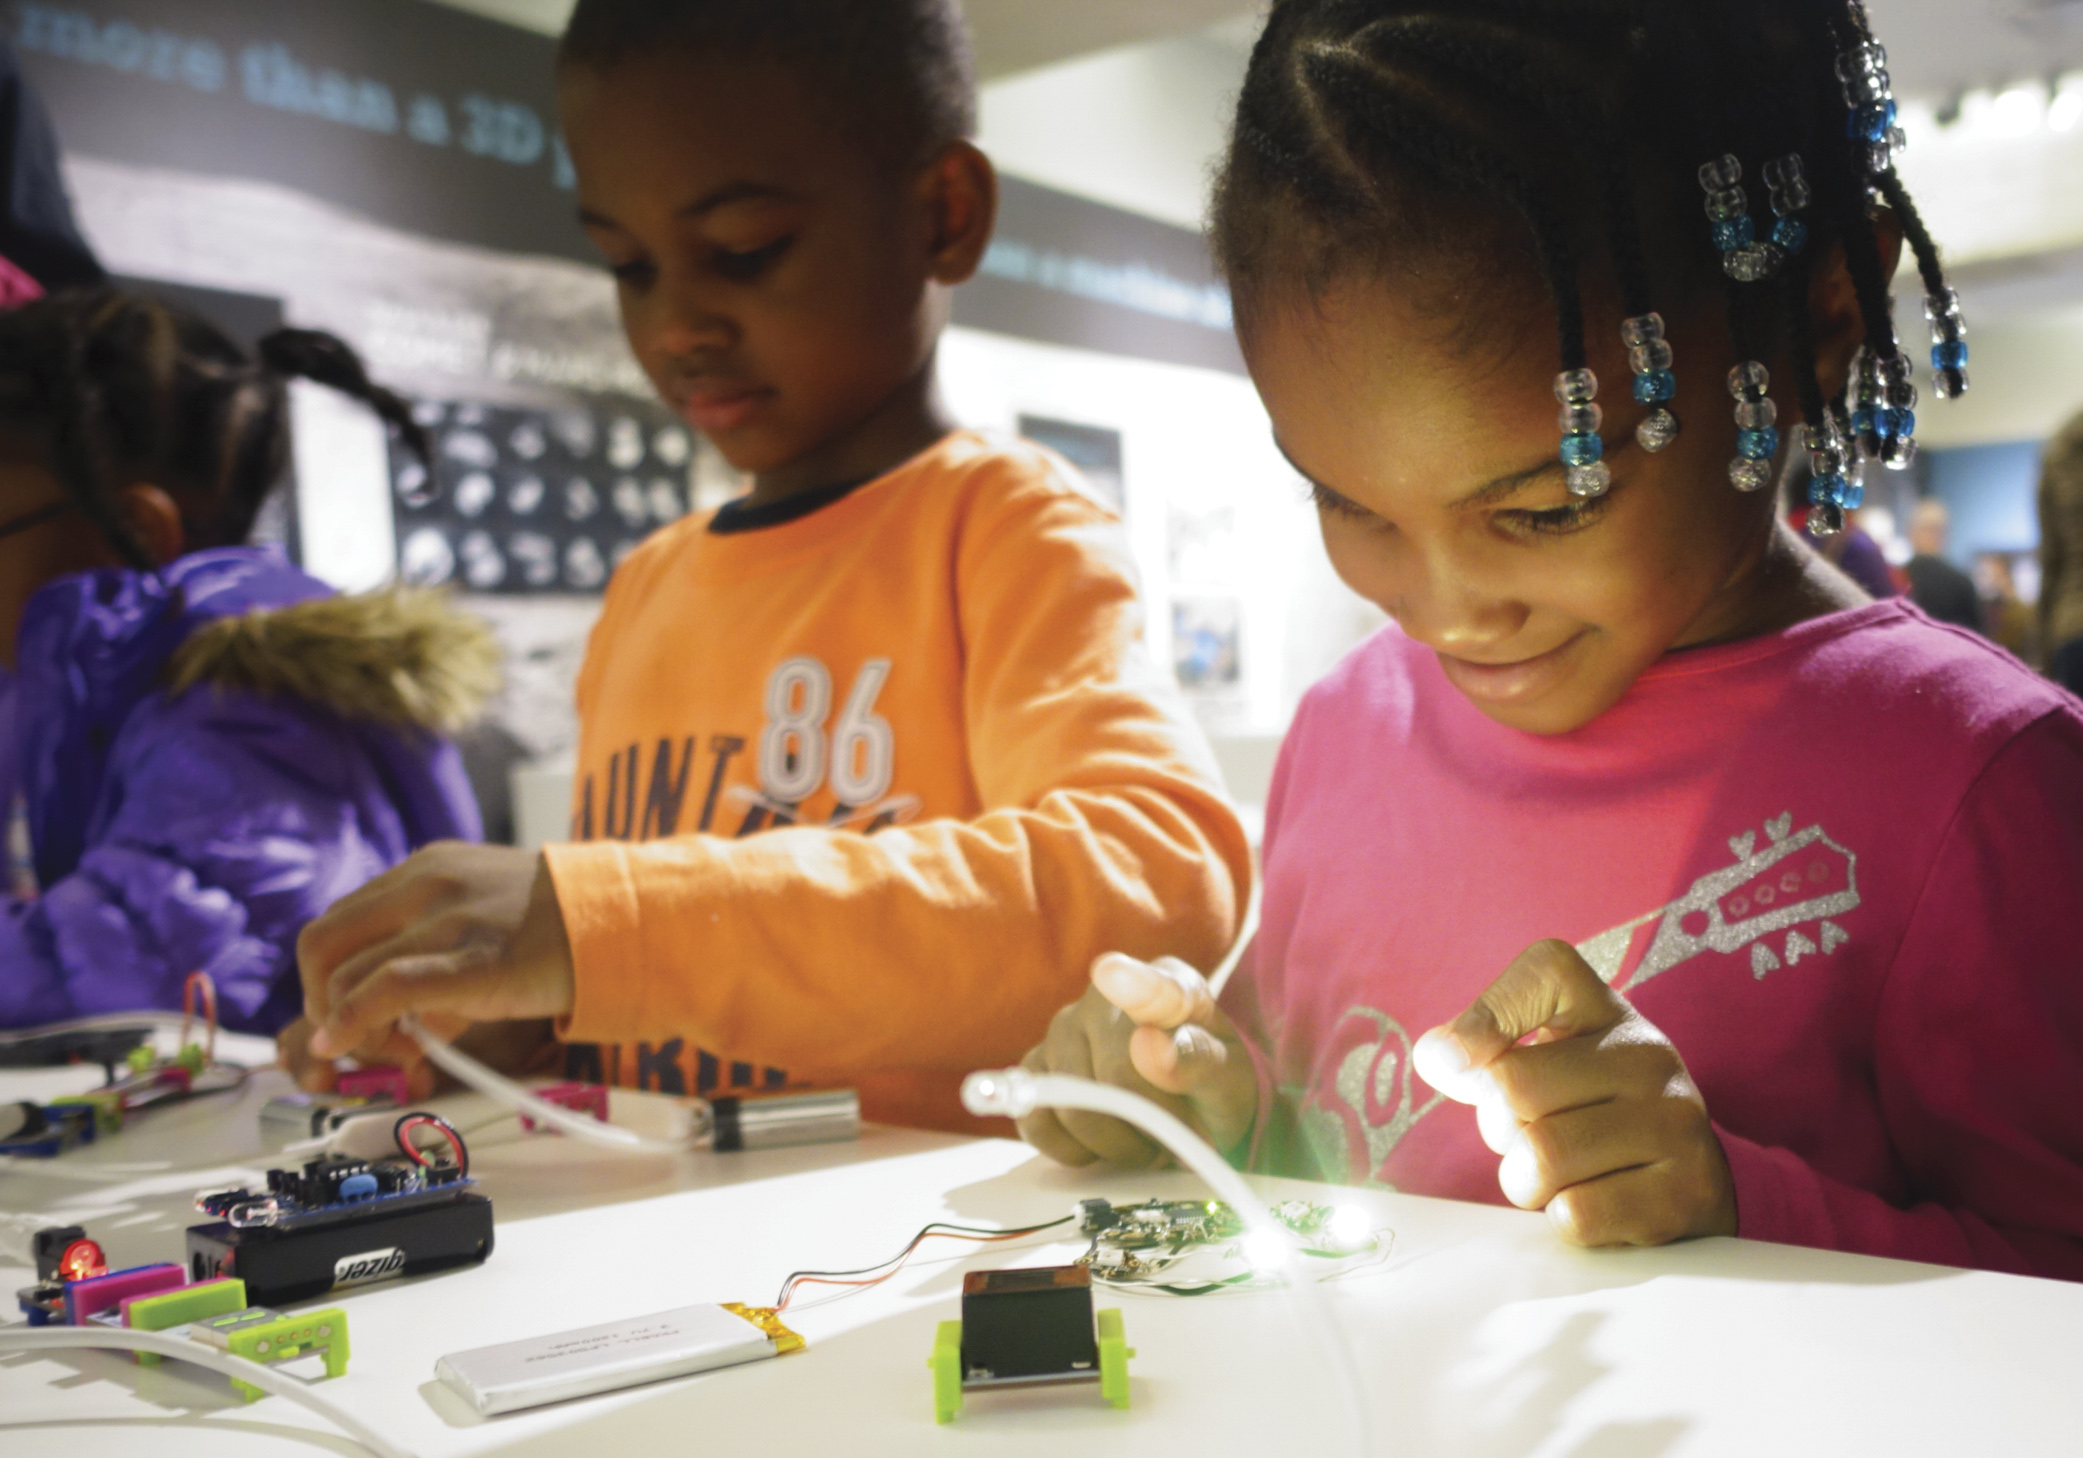 MODA is looking for the littlest engineers to join its week-long camps this year!